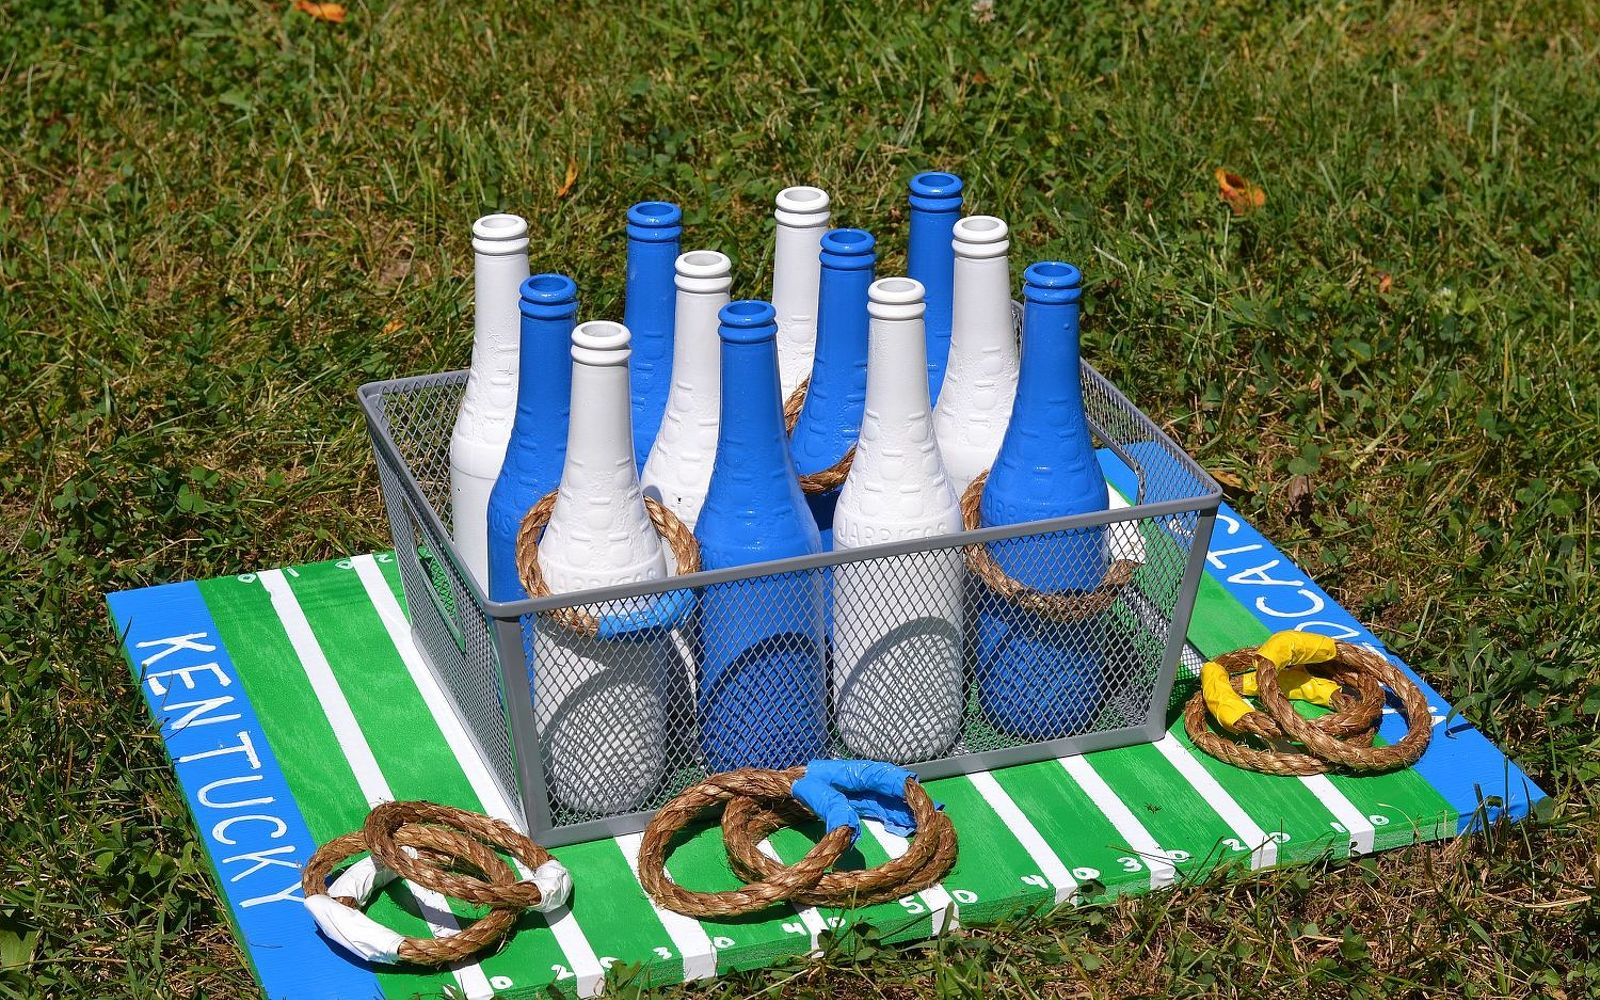 13 crazy fun yard games your family will flip for this summer